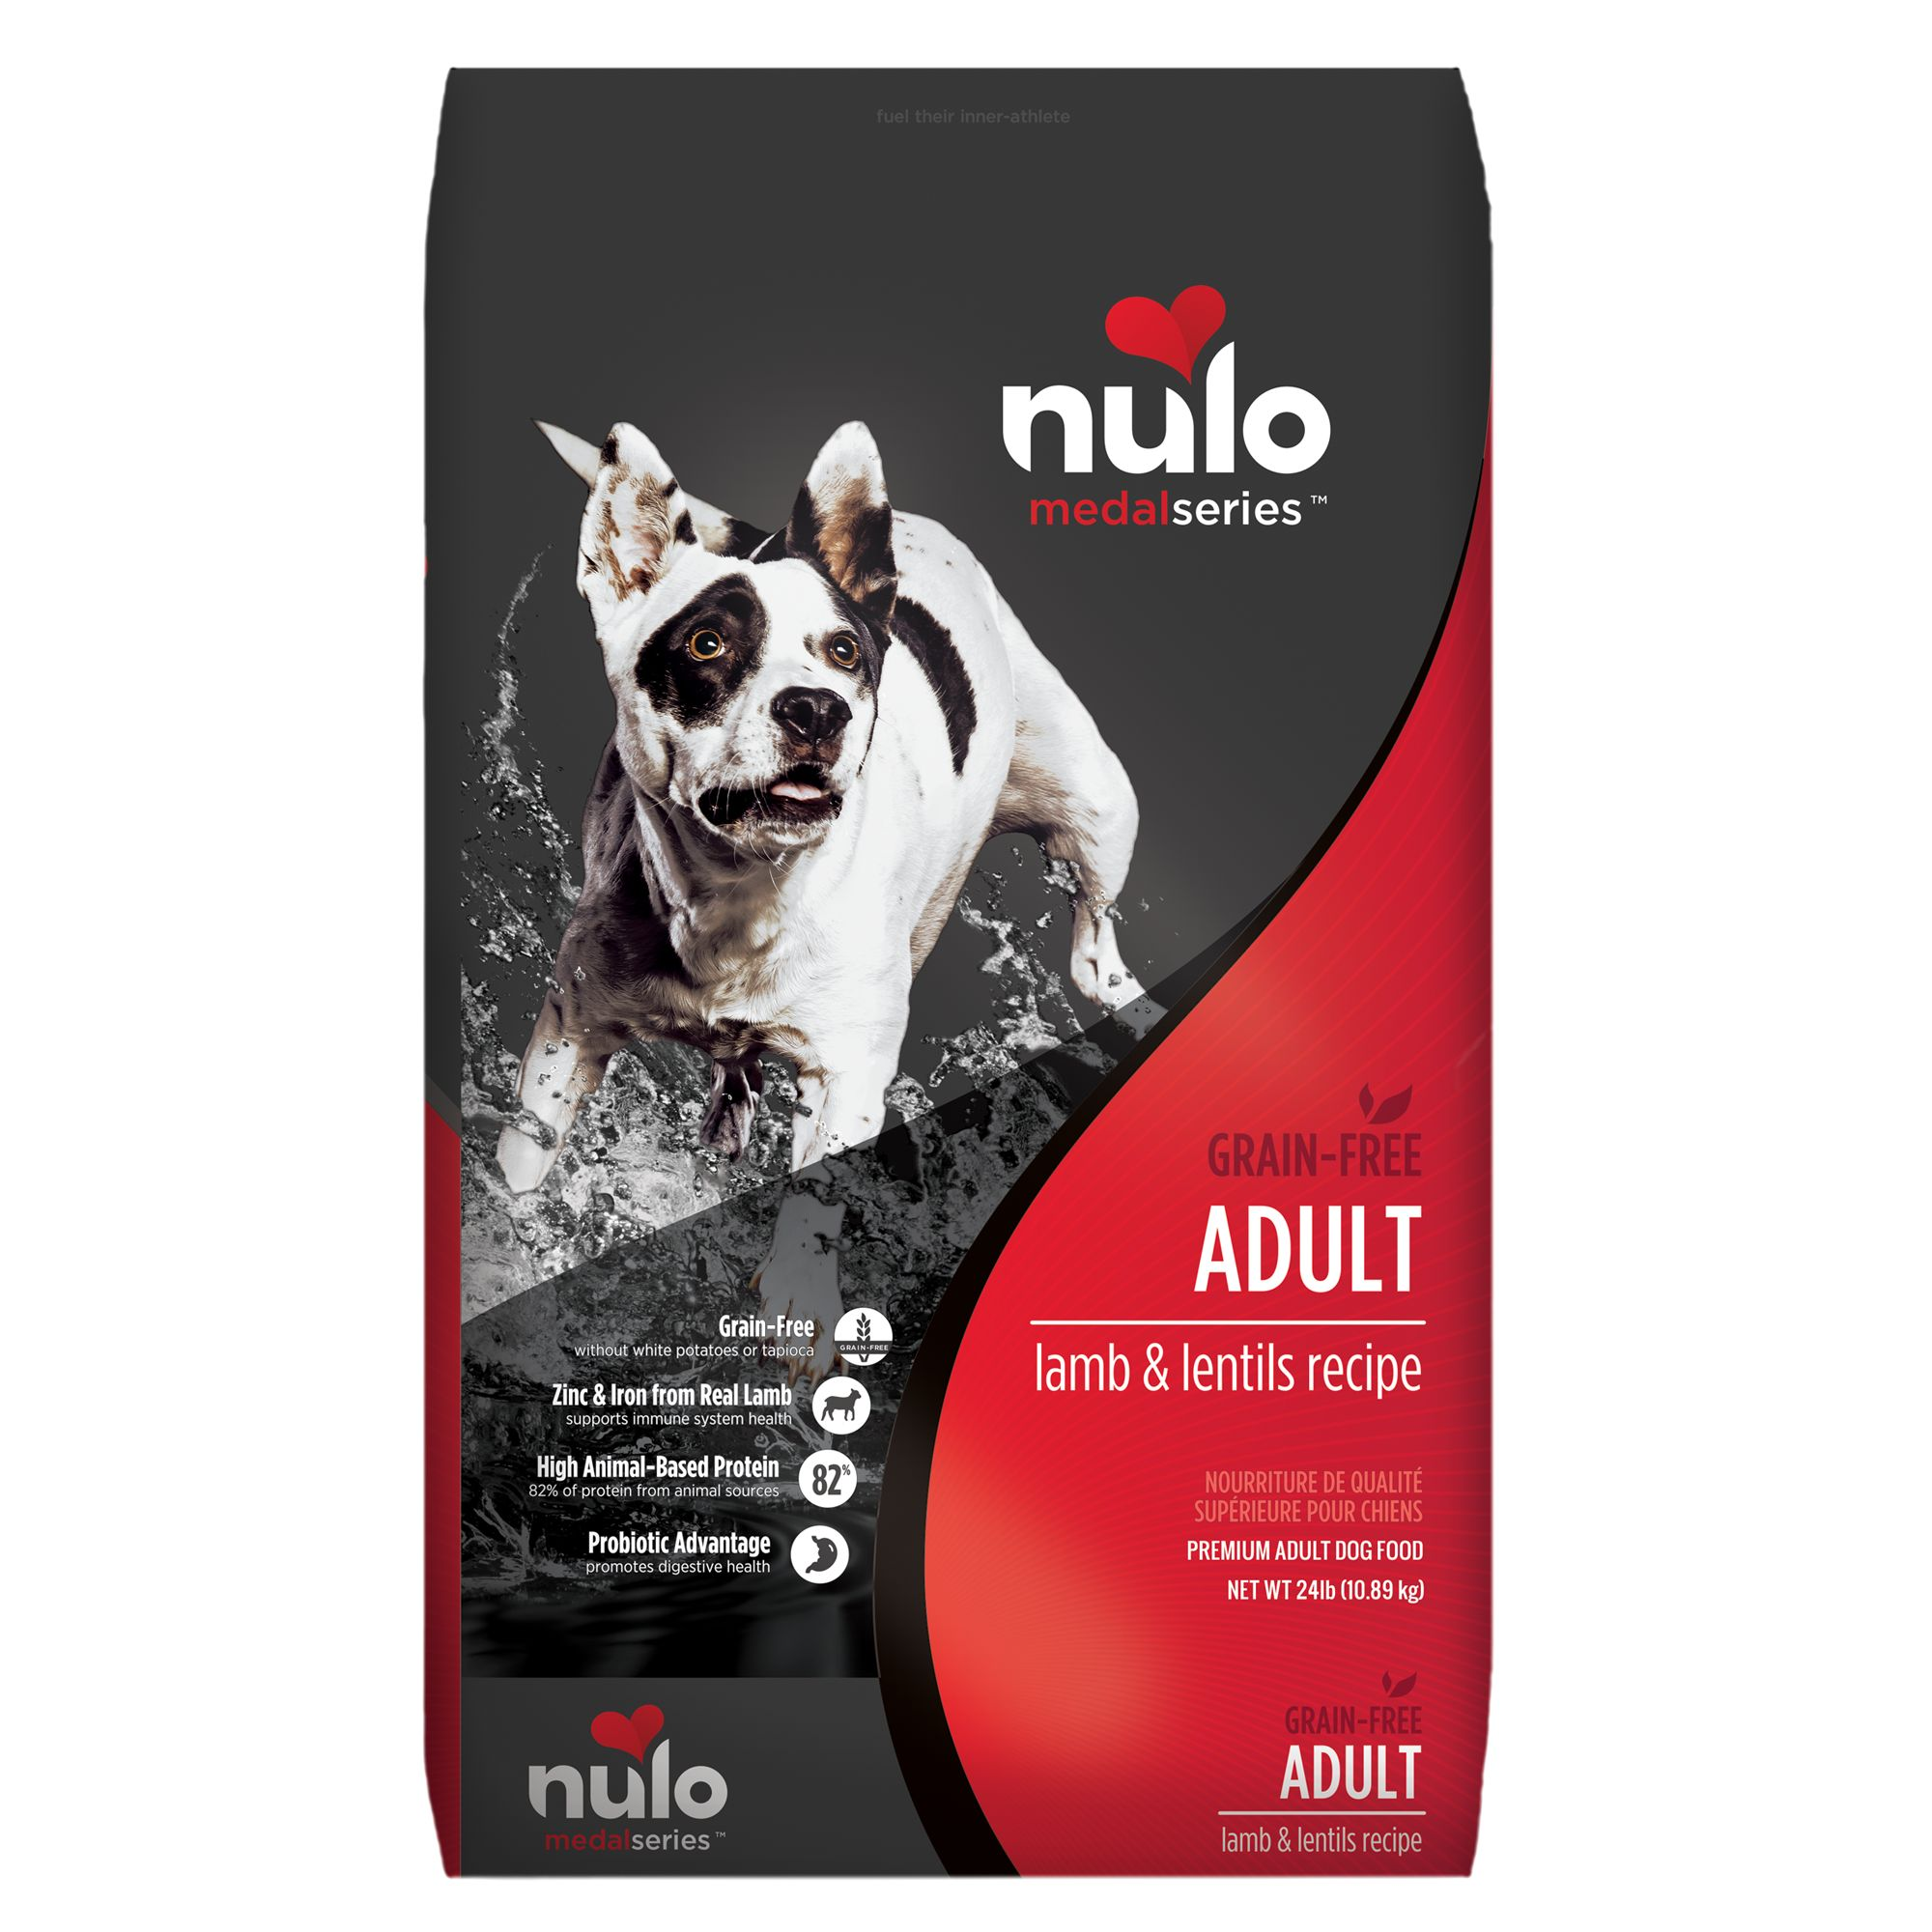 Nulo Medalseries Adult Dog Food Grain Free Size 24 Lb